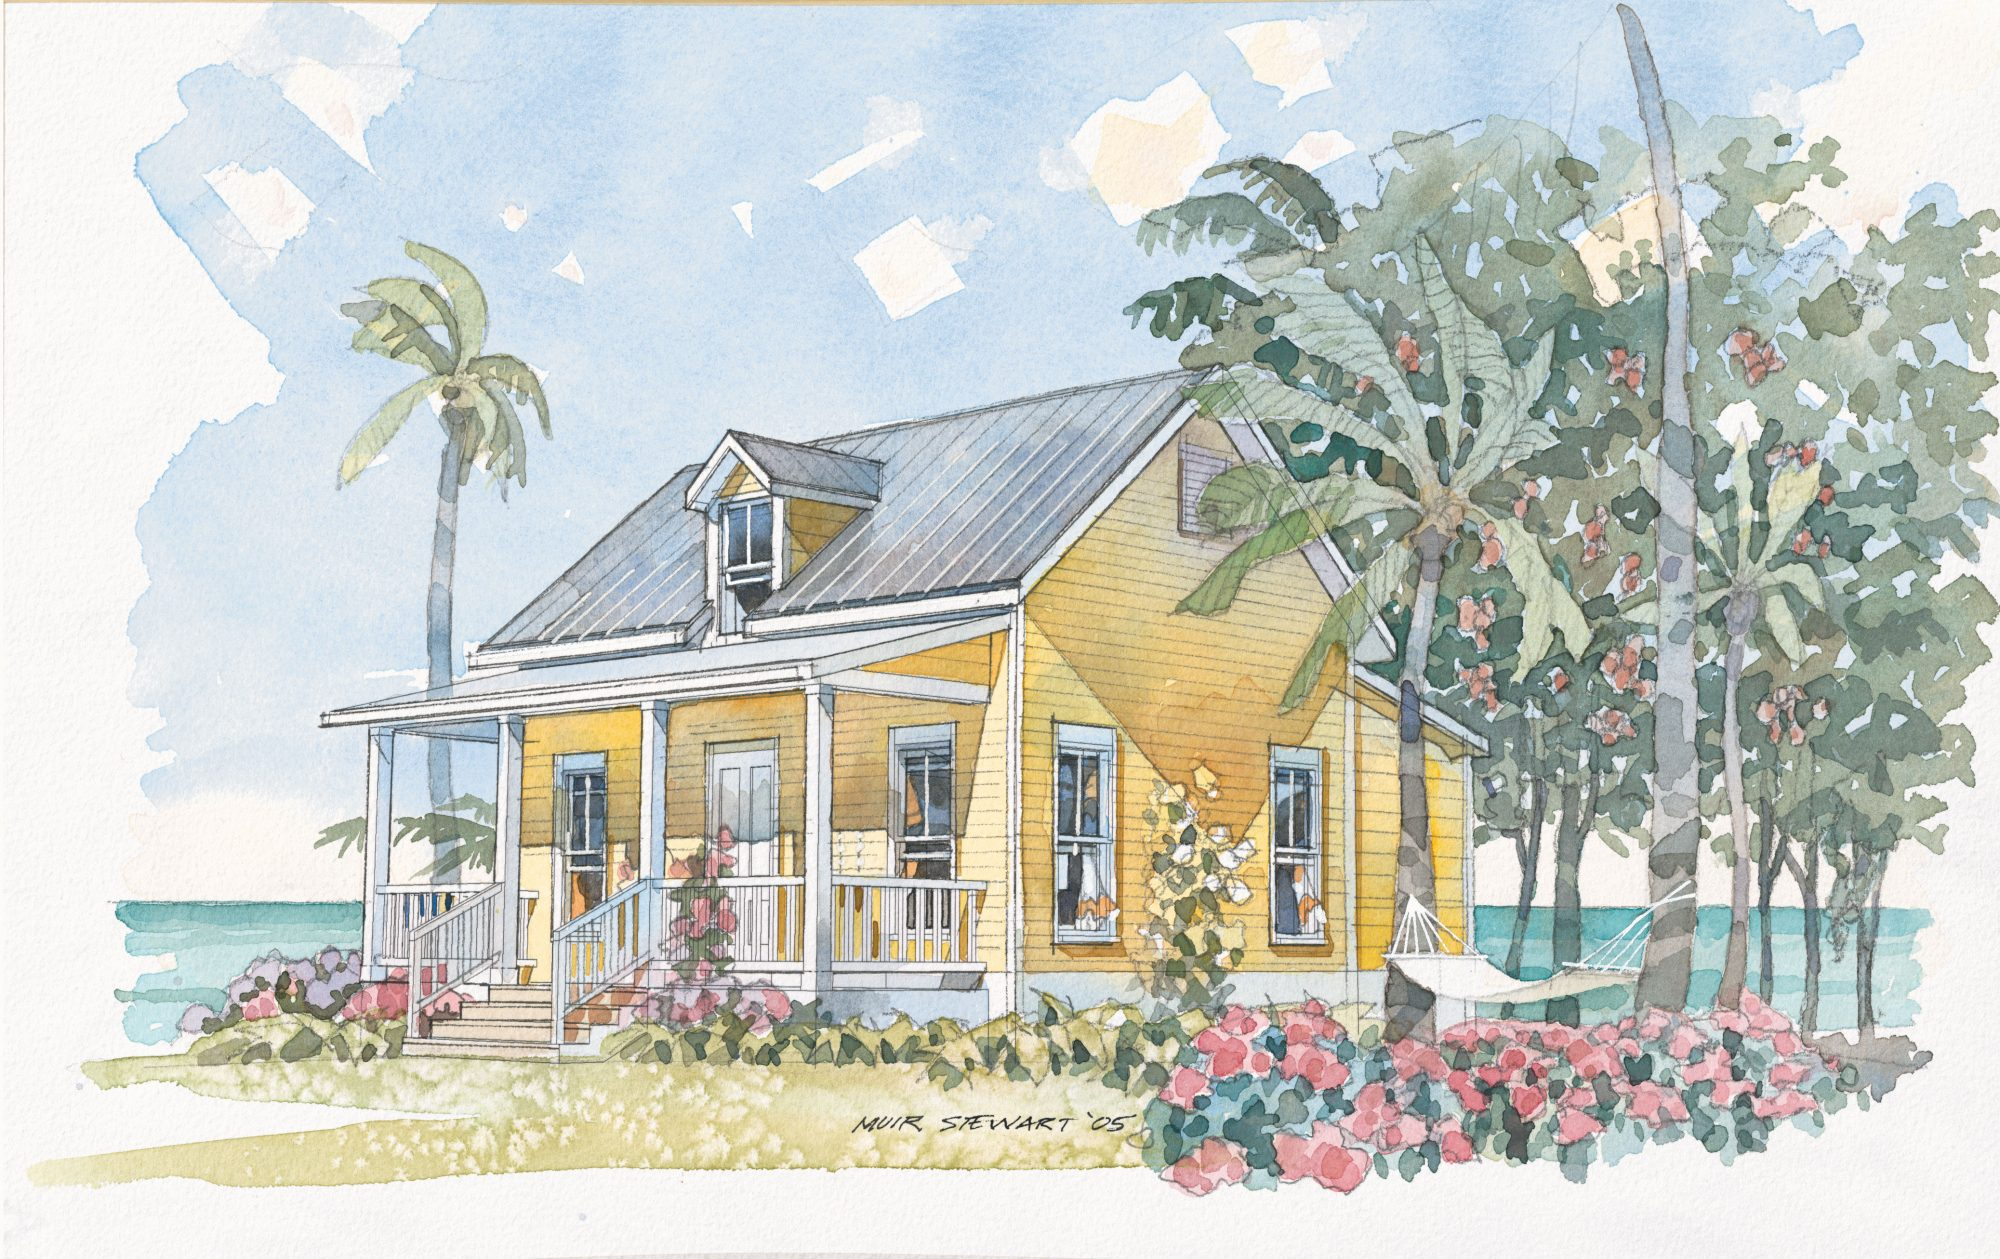 Beachside Bungalow